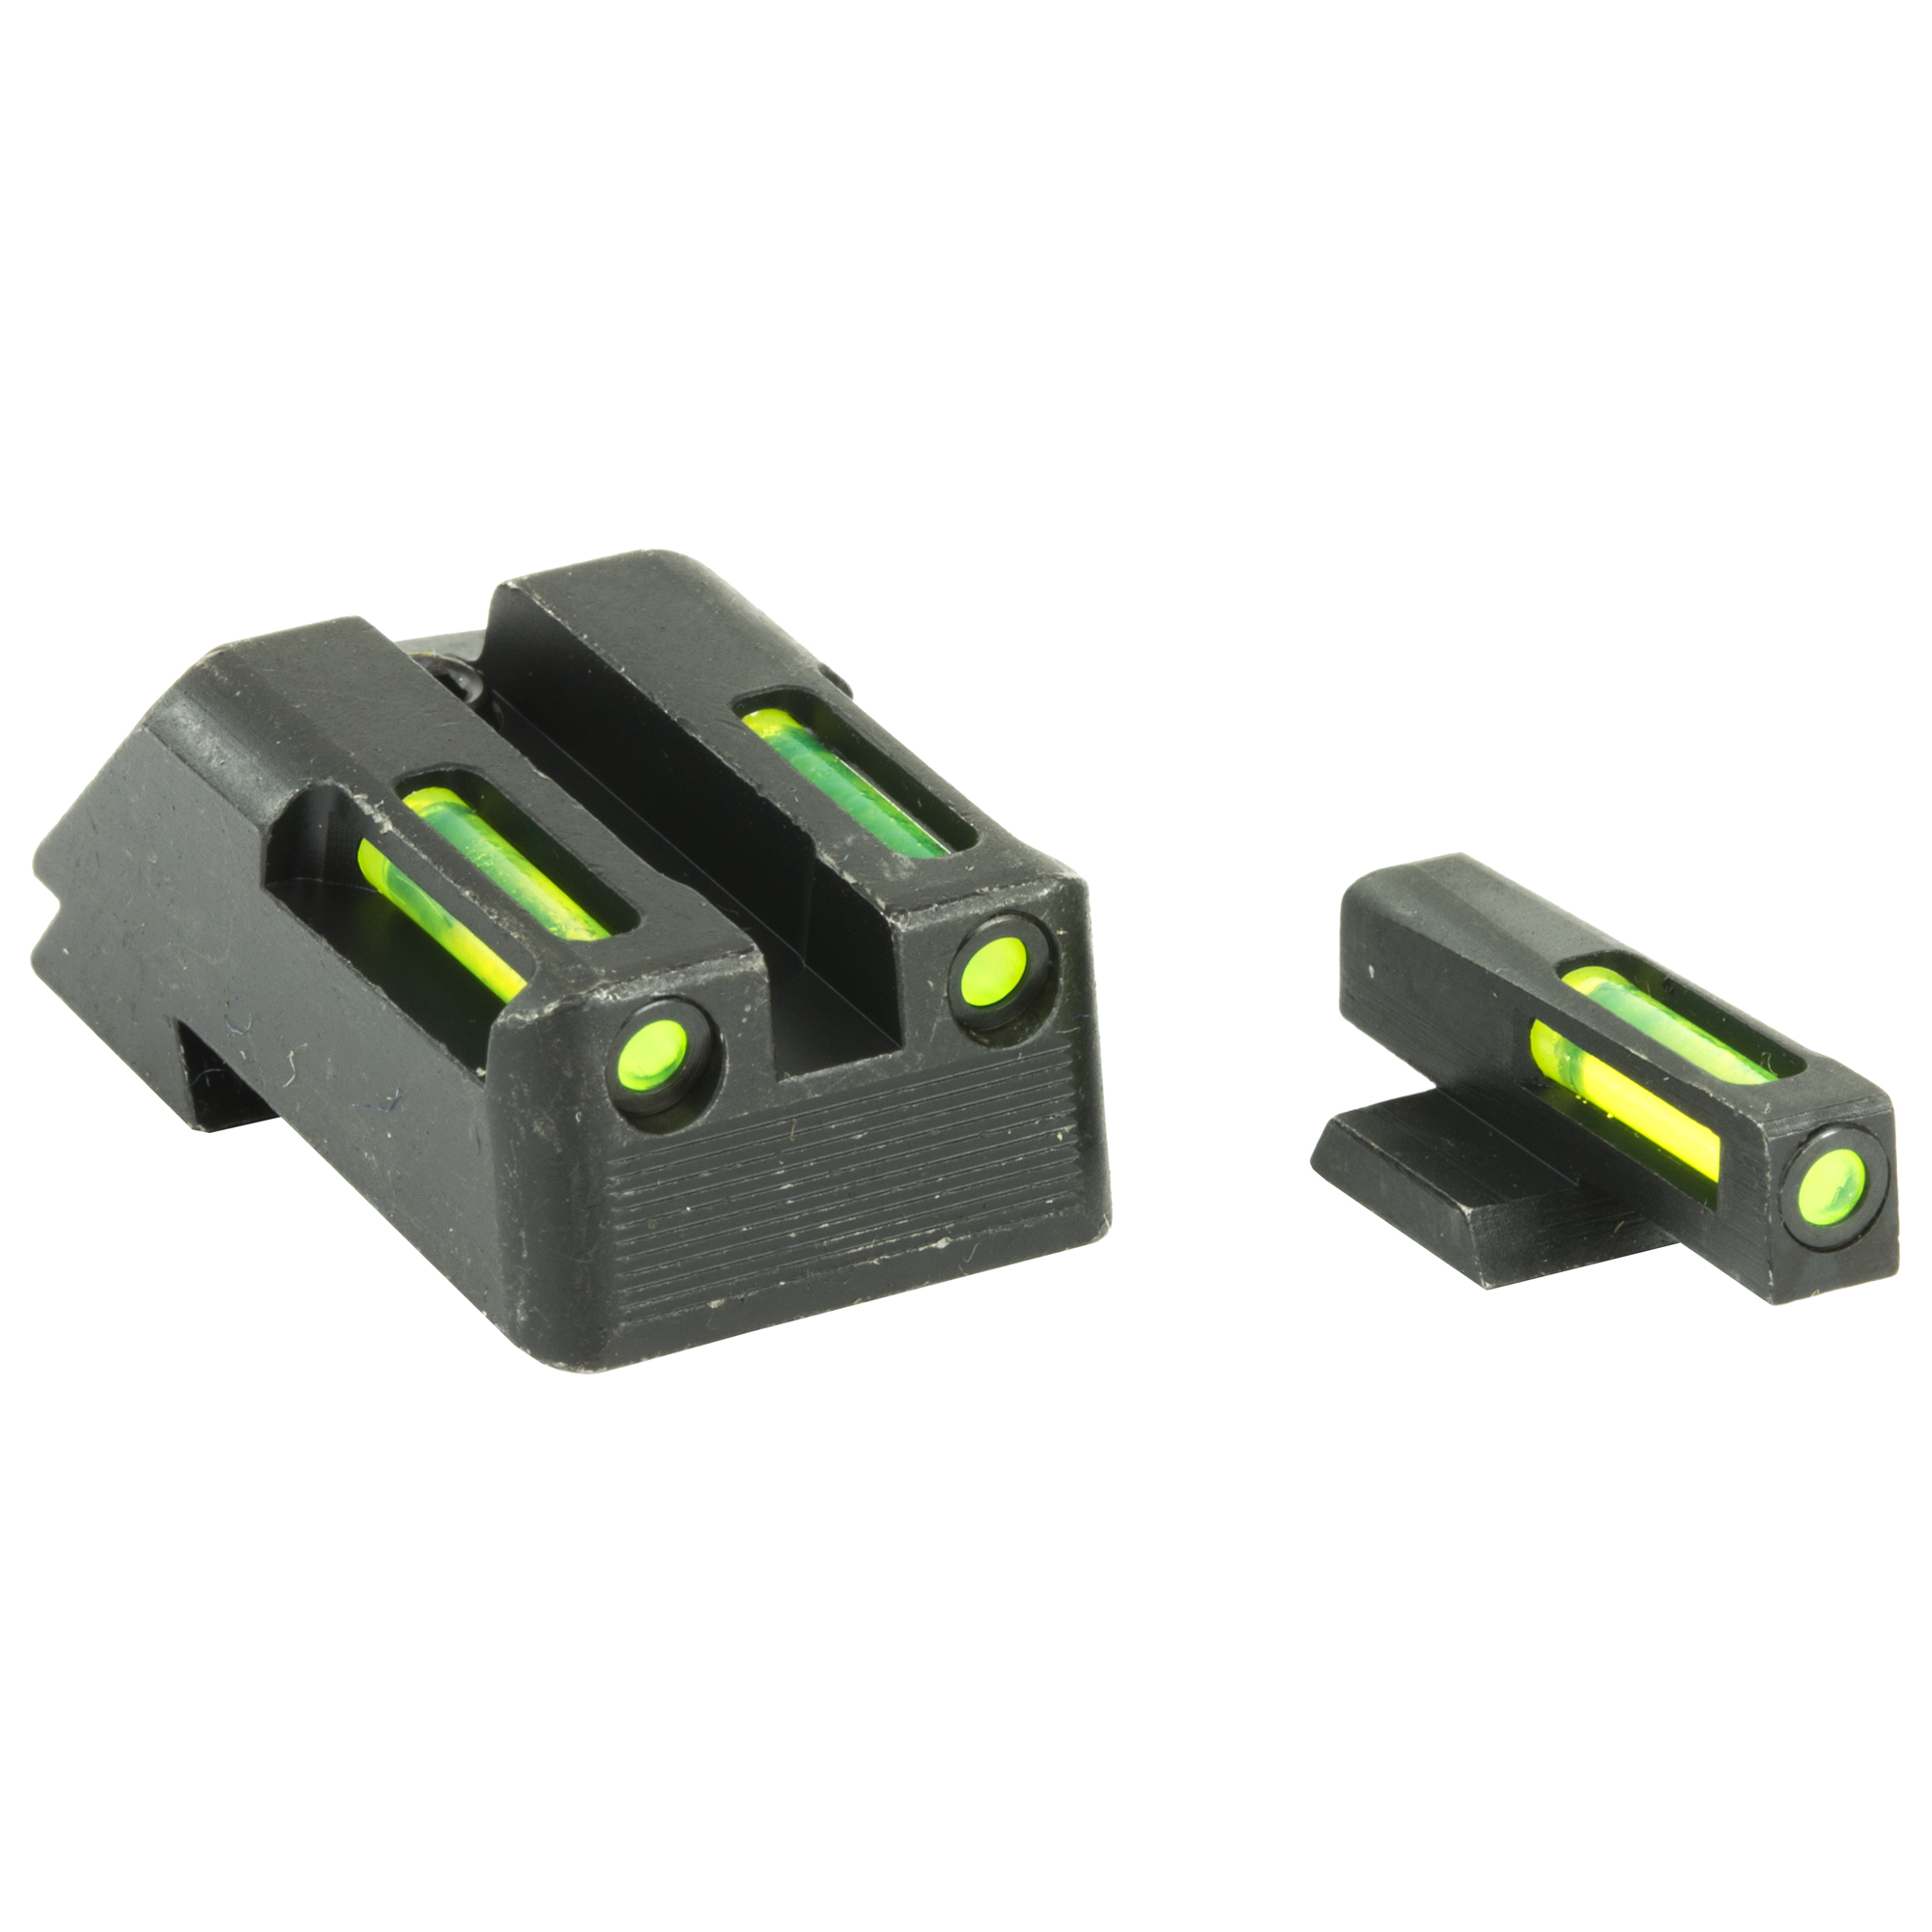 HIVIZ(R) LiteWave H3 sight combines Tritium with our LitePipes technology for day/night performance with 24 hour illumination. Front and rear sight are green. 12 year Tritium warranty. Fits 1911 models with fixed rear sight; does not fit Micro.